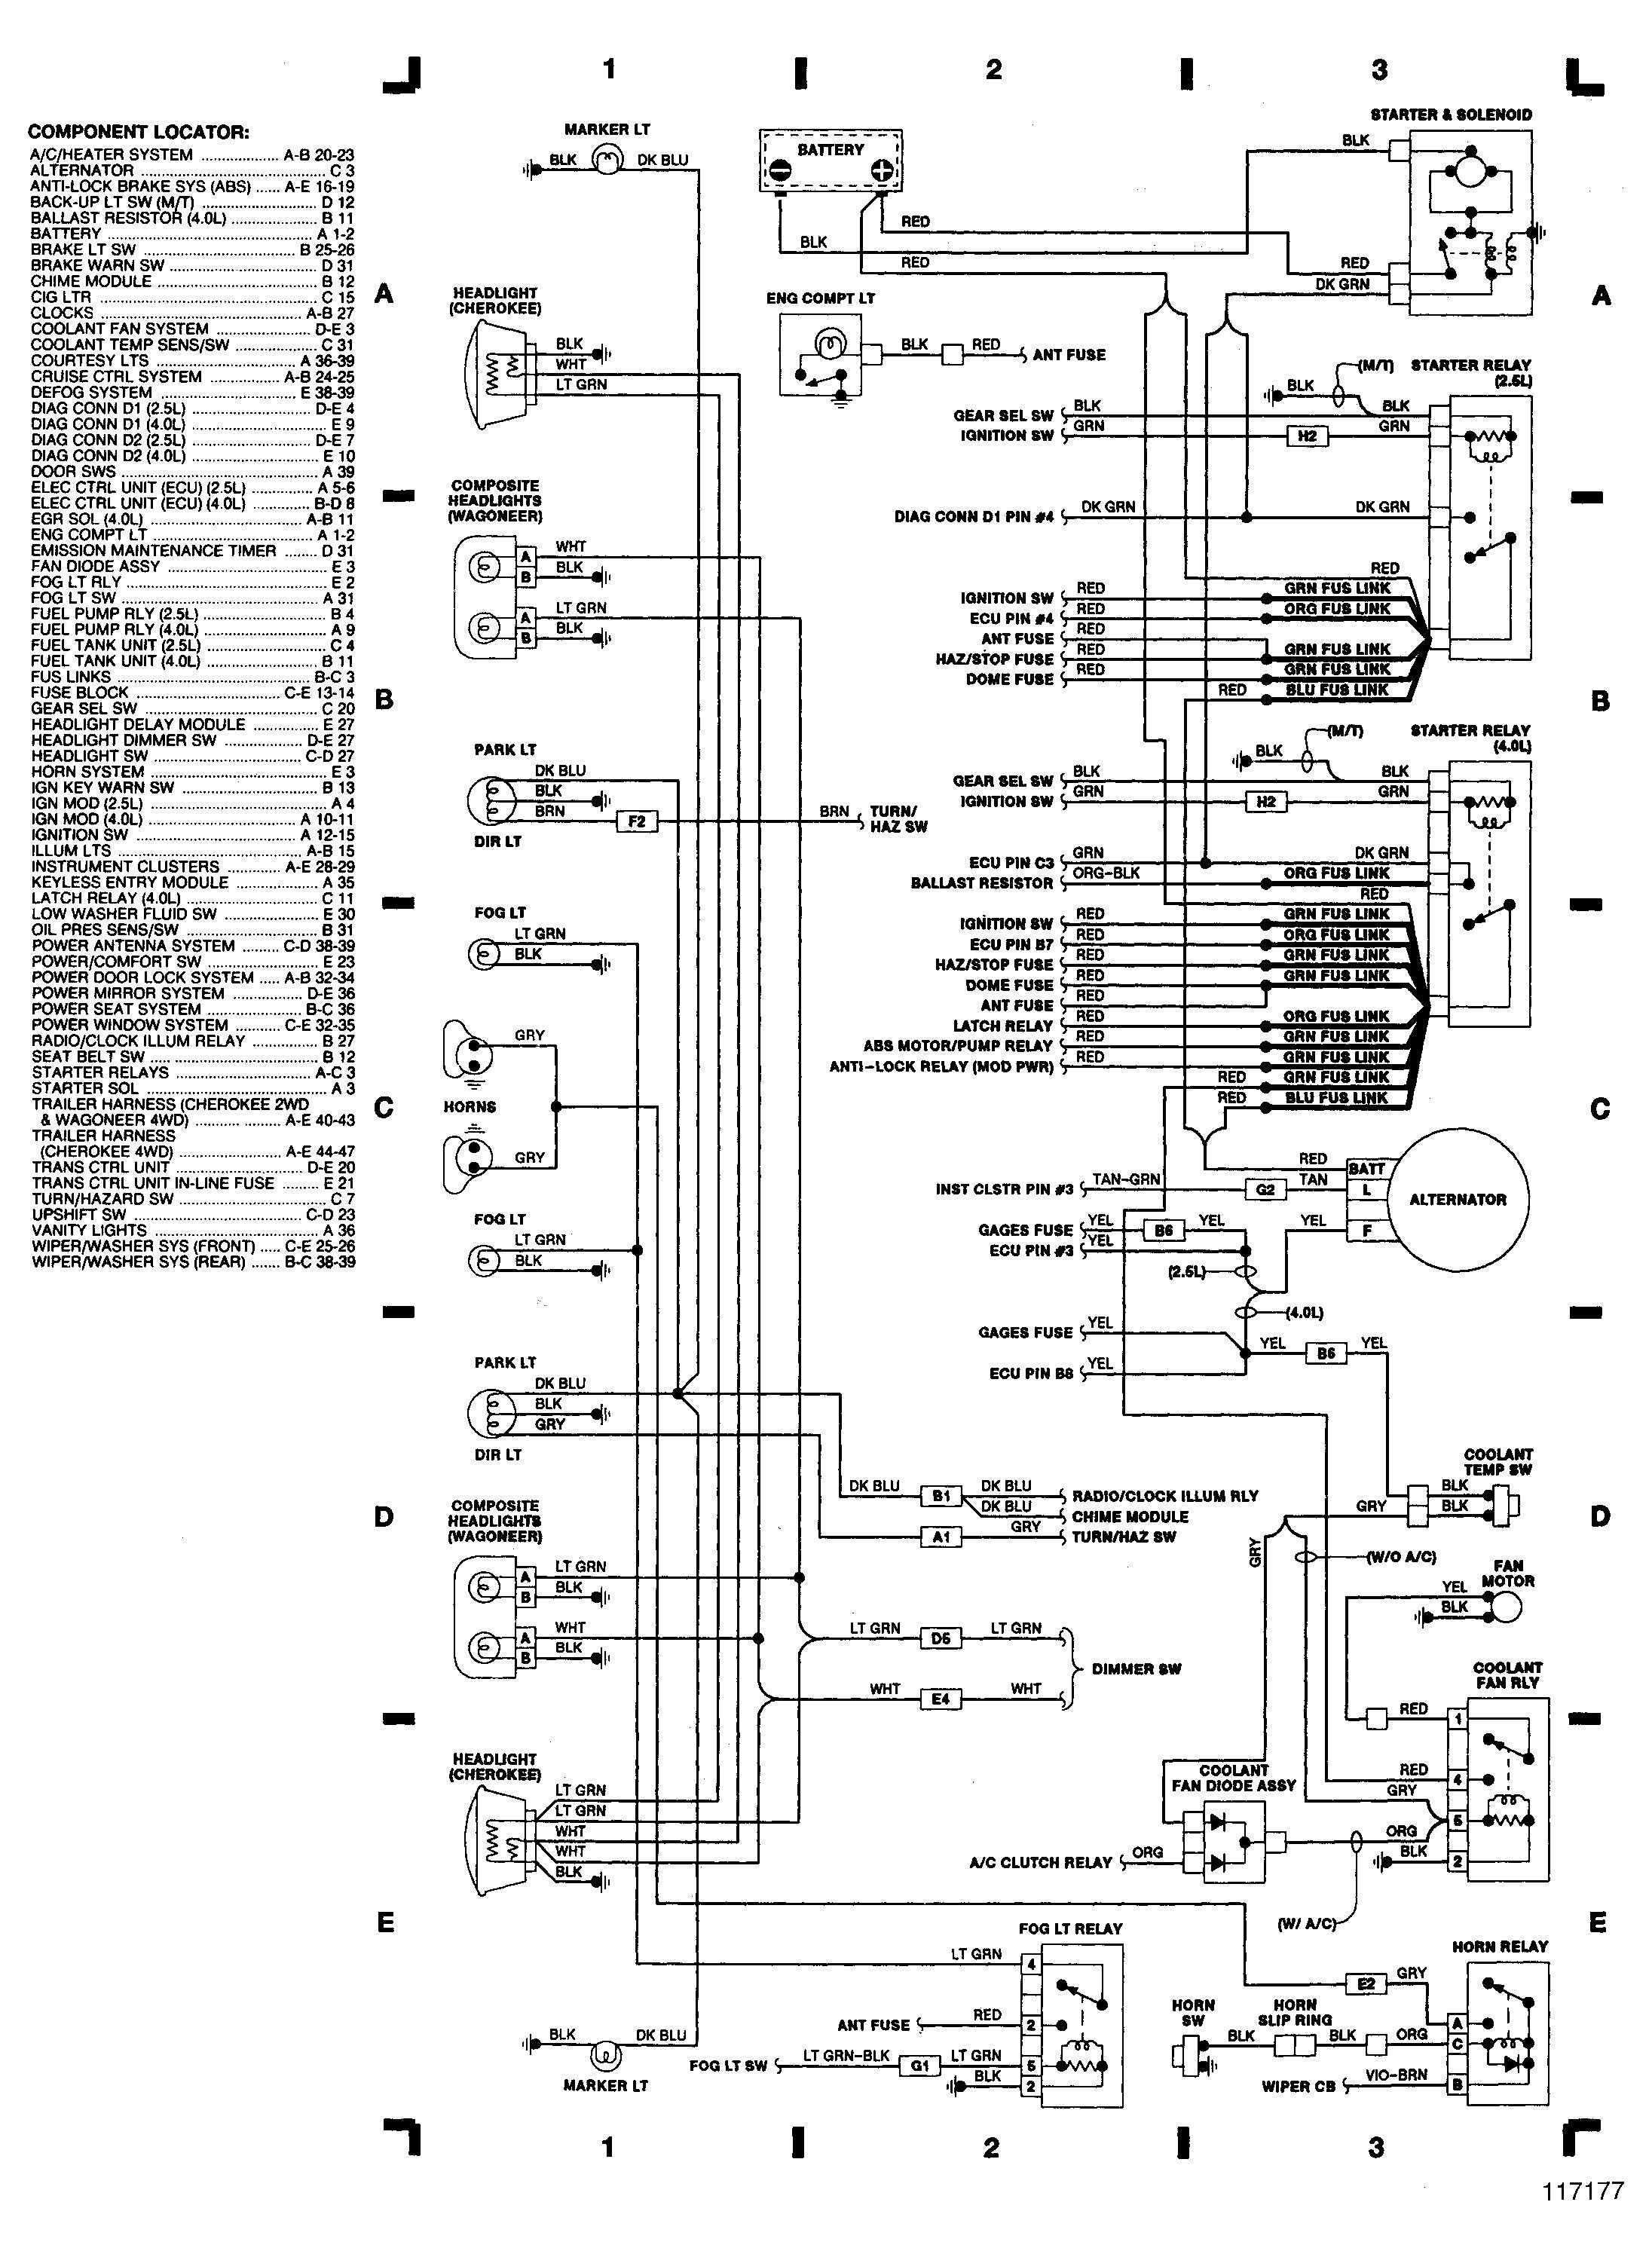 Awesome Wiring Diagram Jeep Grand Cherokee #diagrams #digramssample  #diagramimages #wiringdiagramsample #wiringdia… | Jeep grand cherokee, Jeep  cherokee, Jeep grand | 2005 Jeep Grand Cherokee Laredo Wiring Diagram |  | Pinterest